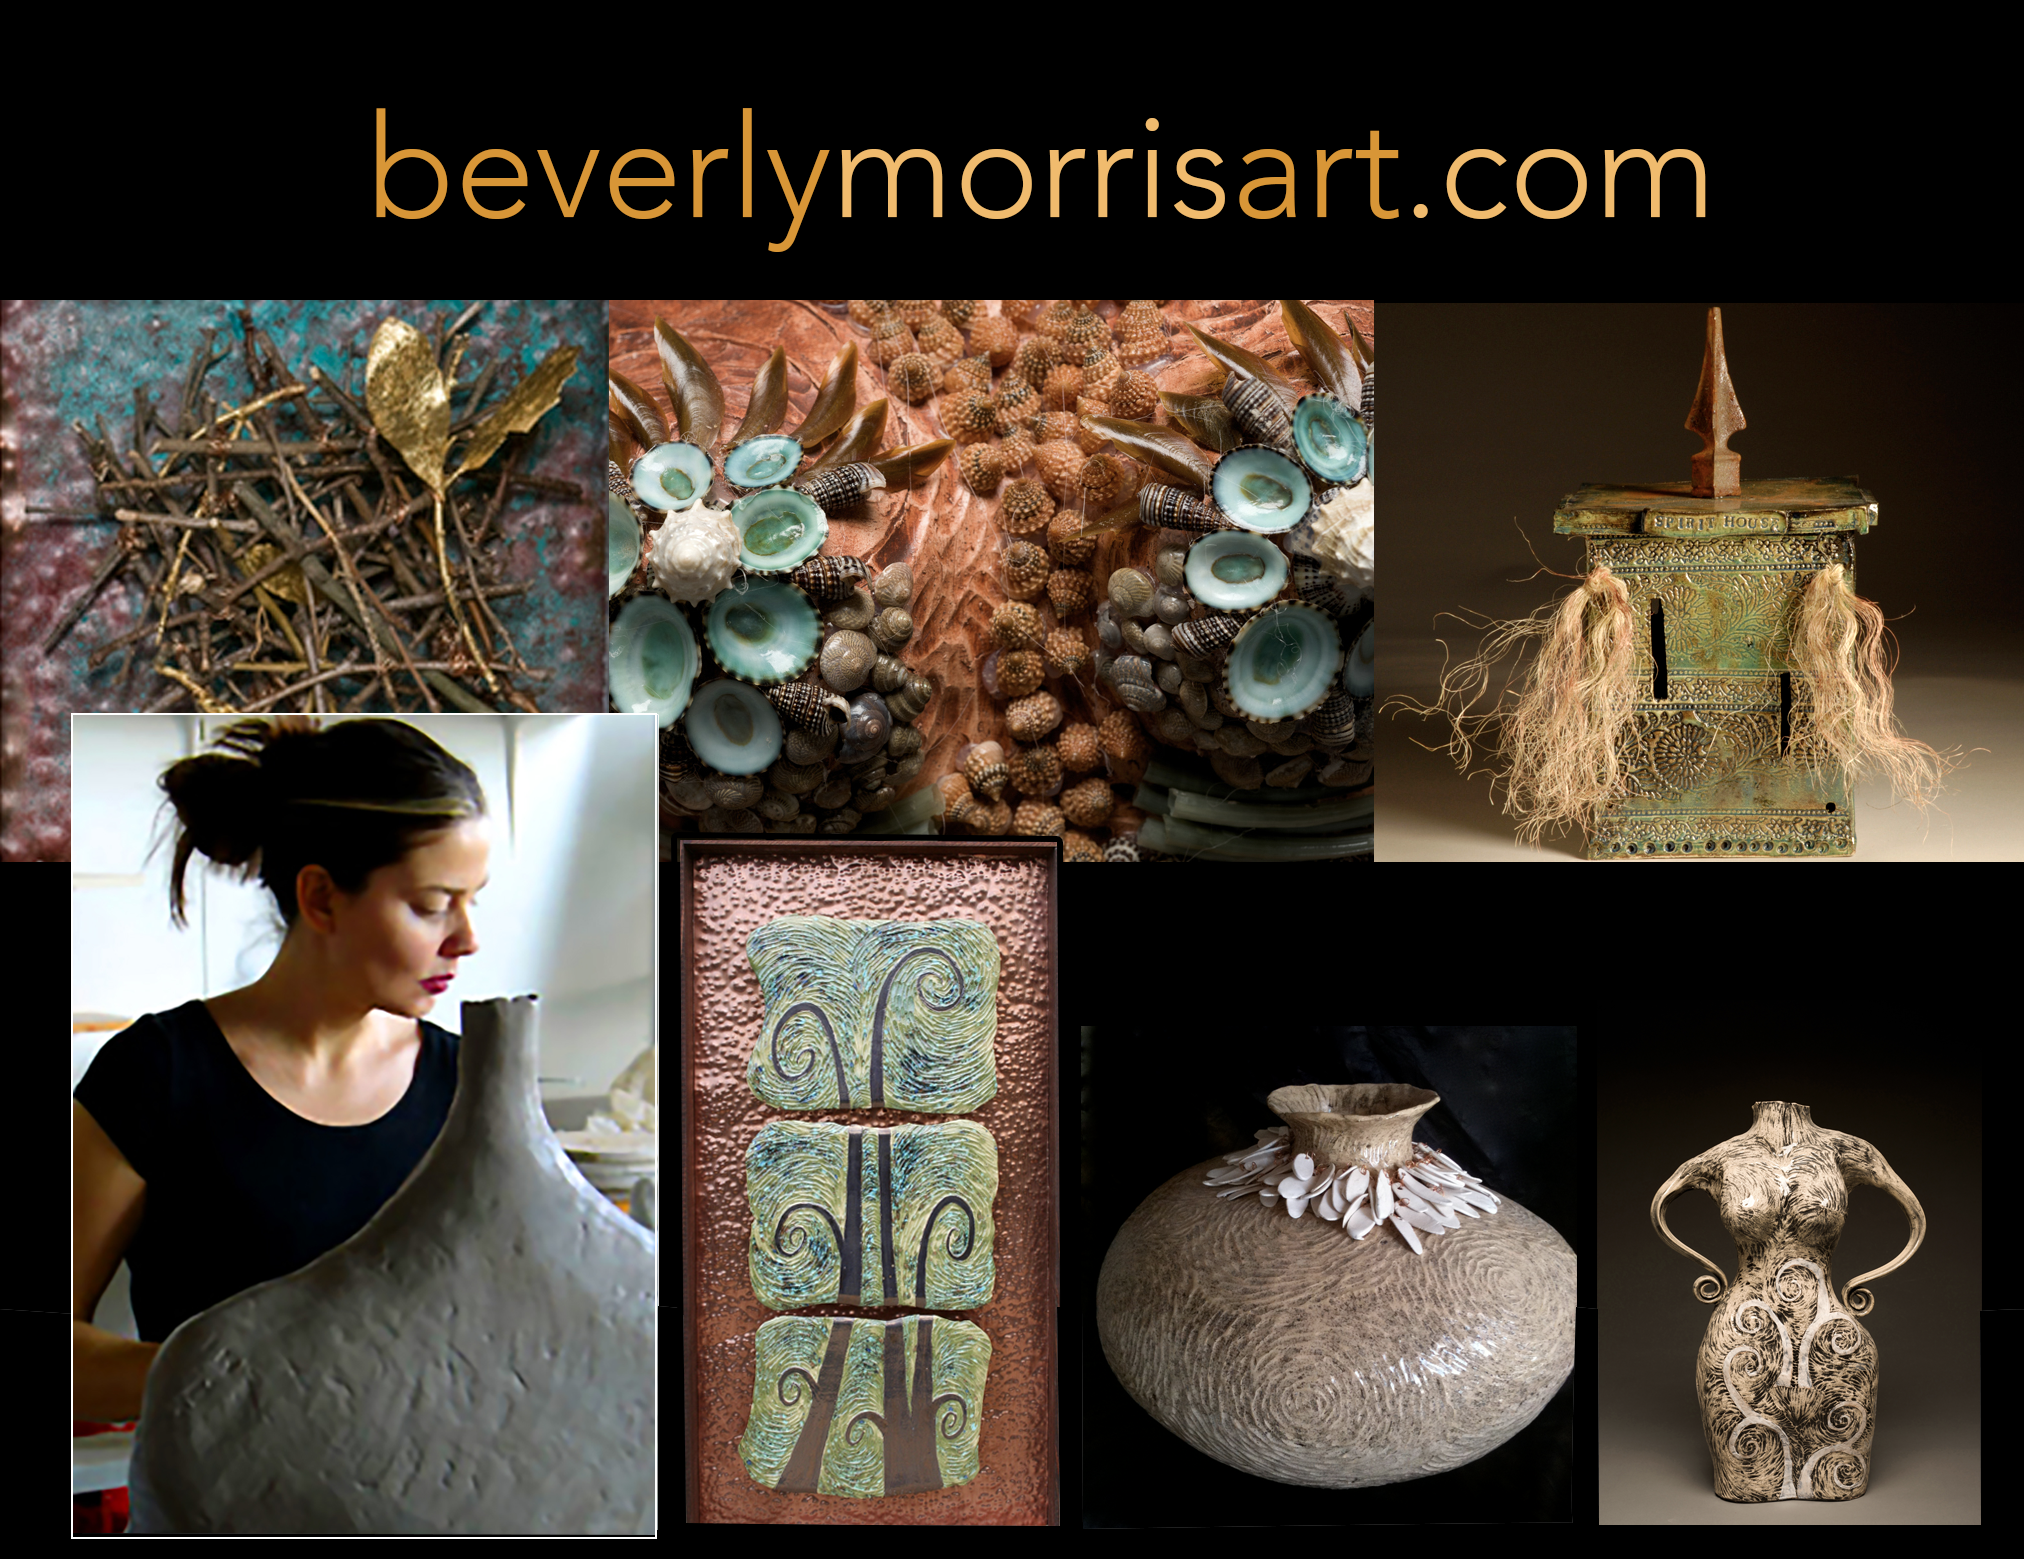 Beverly Morris is a New Orleans ceramic artist